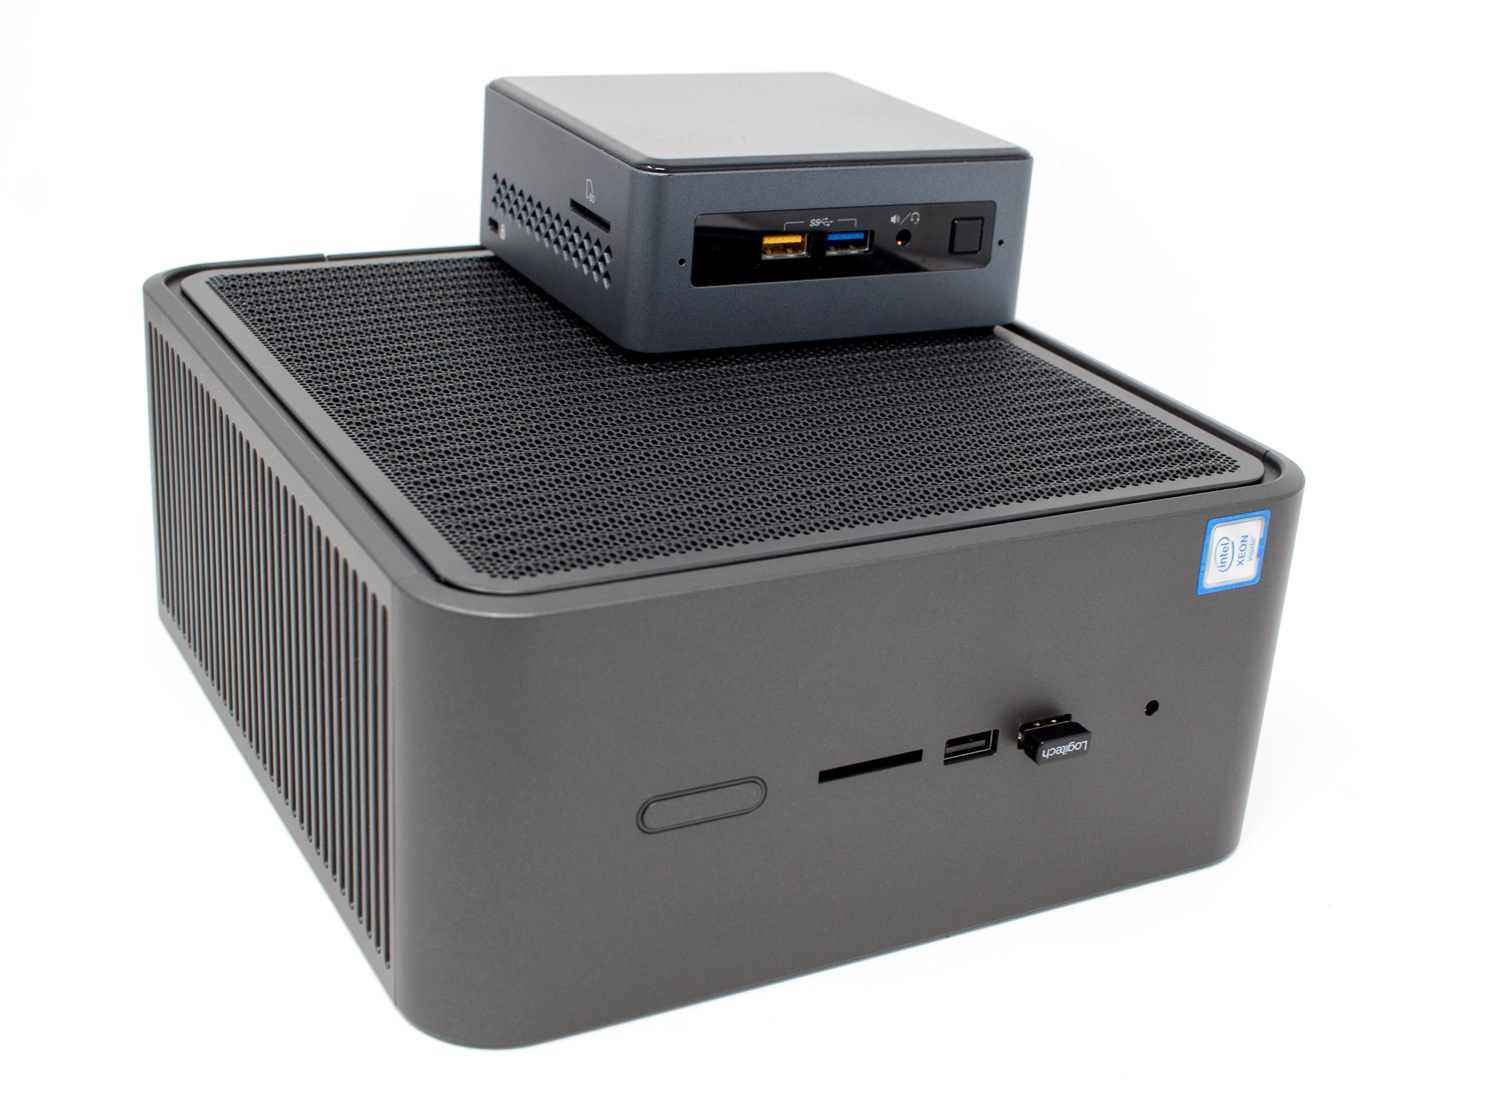 Intel NUC Pro 9 To other NUC